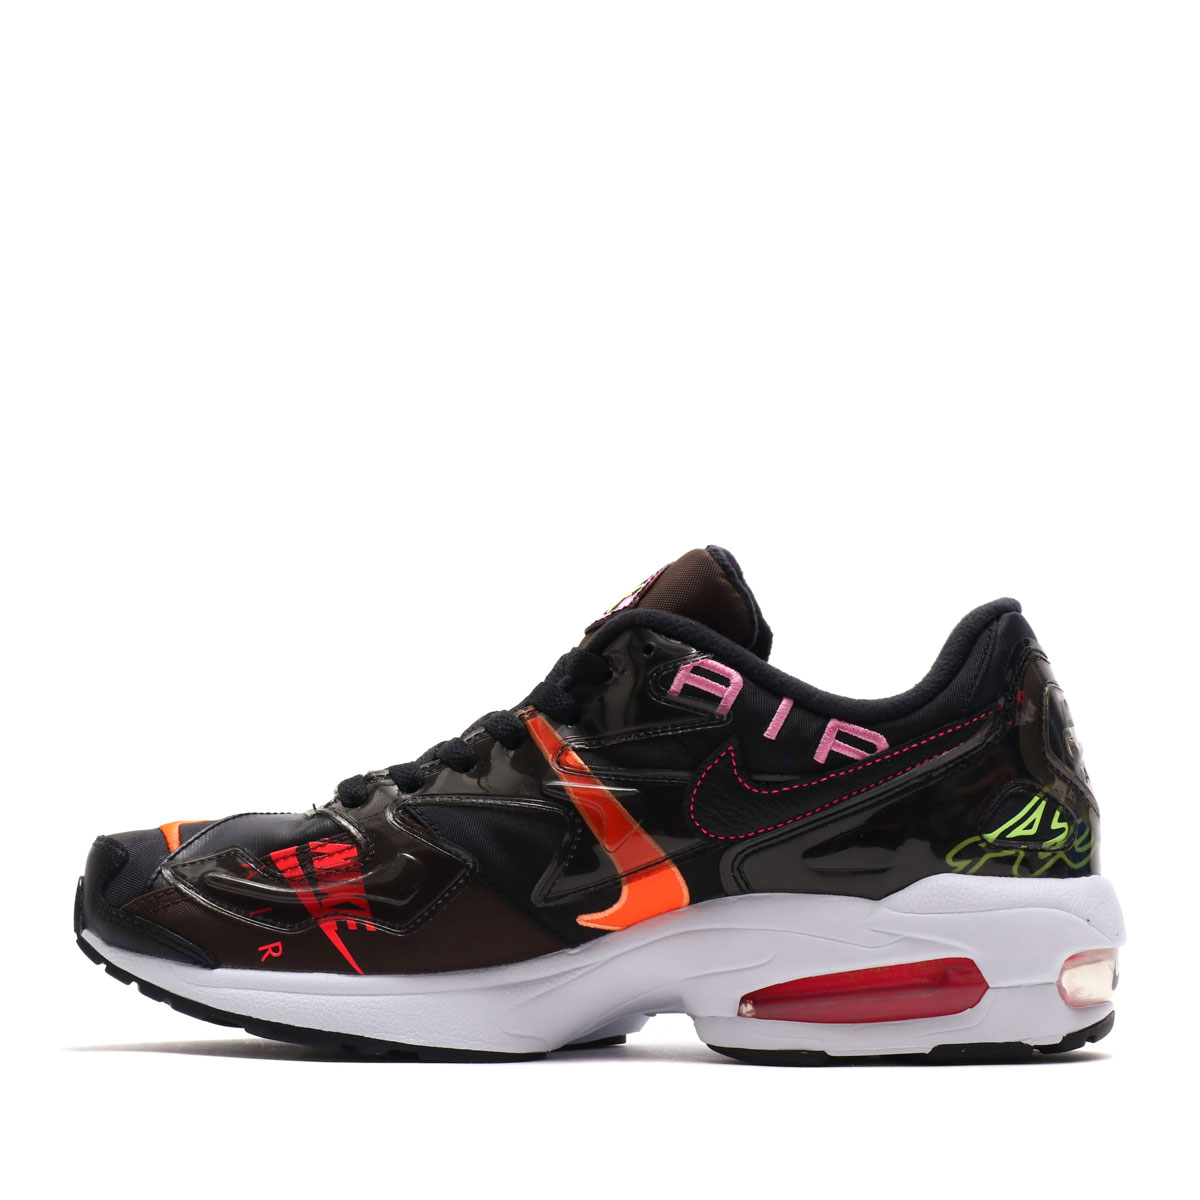 atmos-nike-air-max-2-light-black-release-20190615